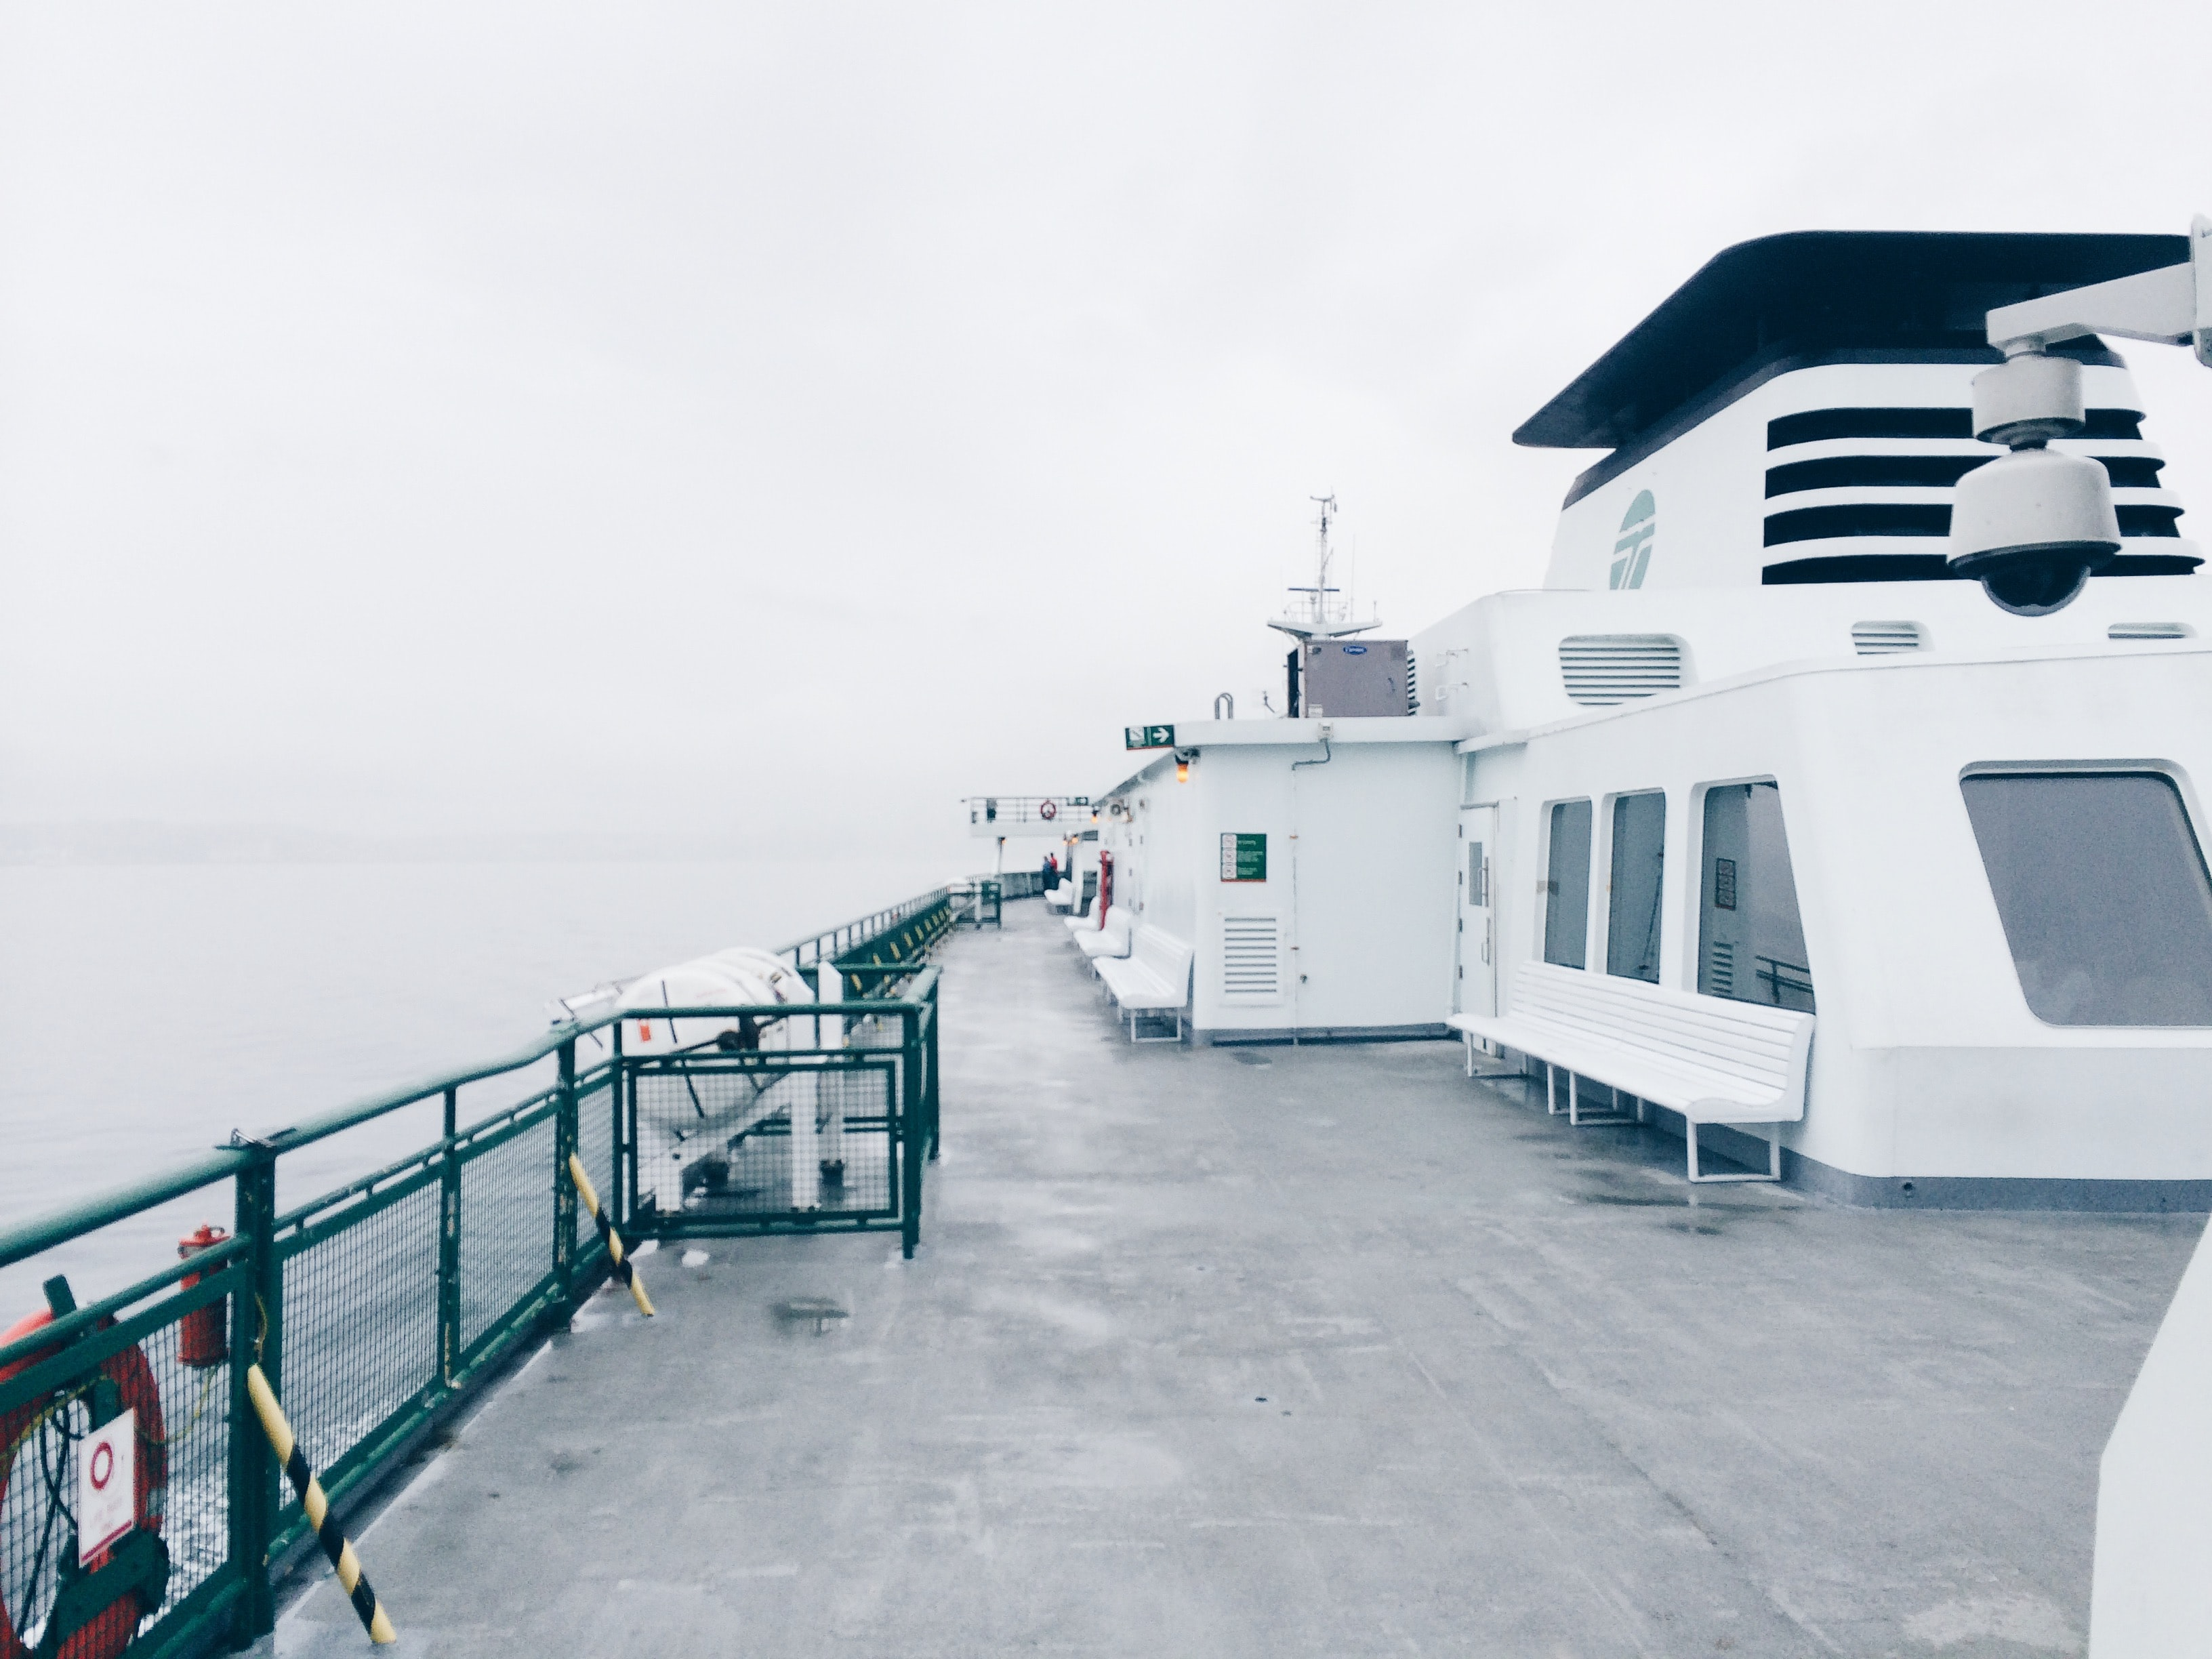 A desaturated photo of a ferry vessel's deck.